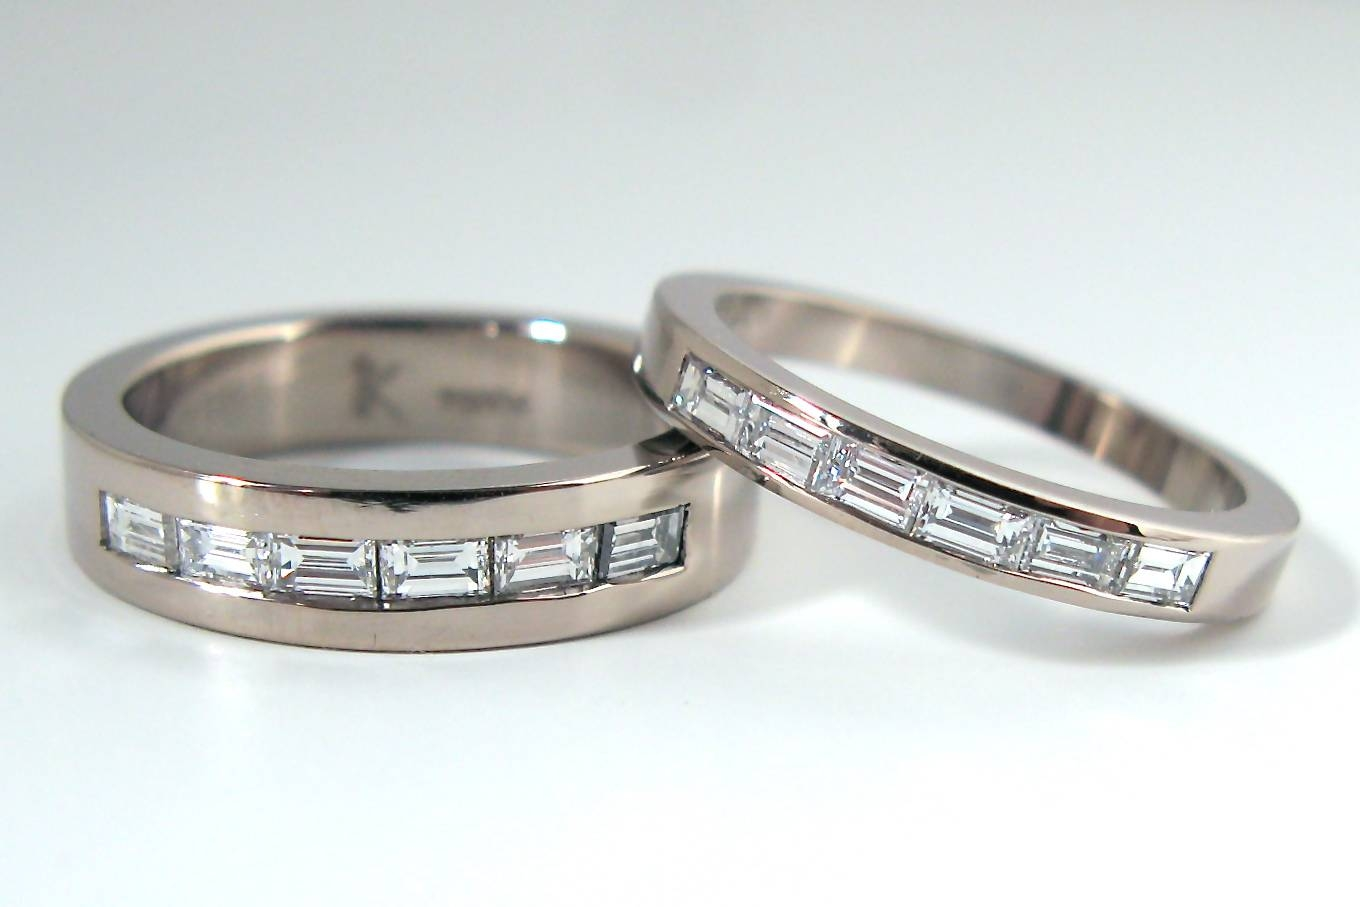 Diamond Baguette Bands With Recent Mens Baguette Diamond Wedding Bands (Gallery 3 of 15)